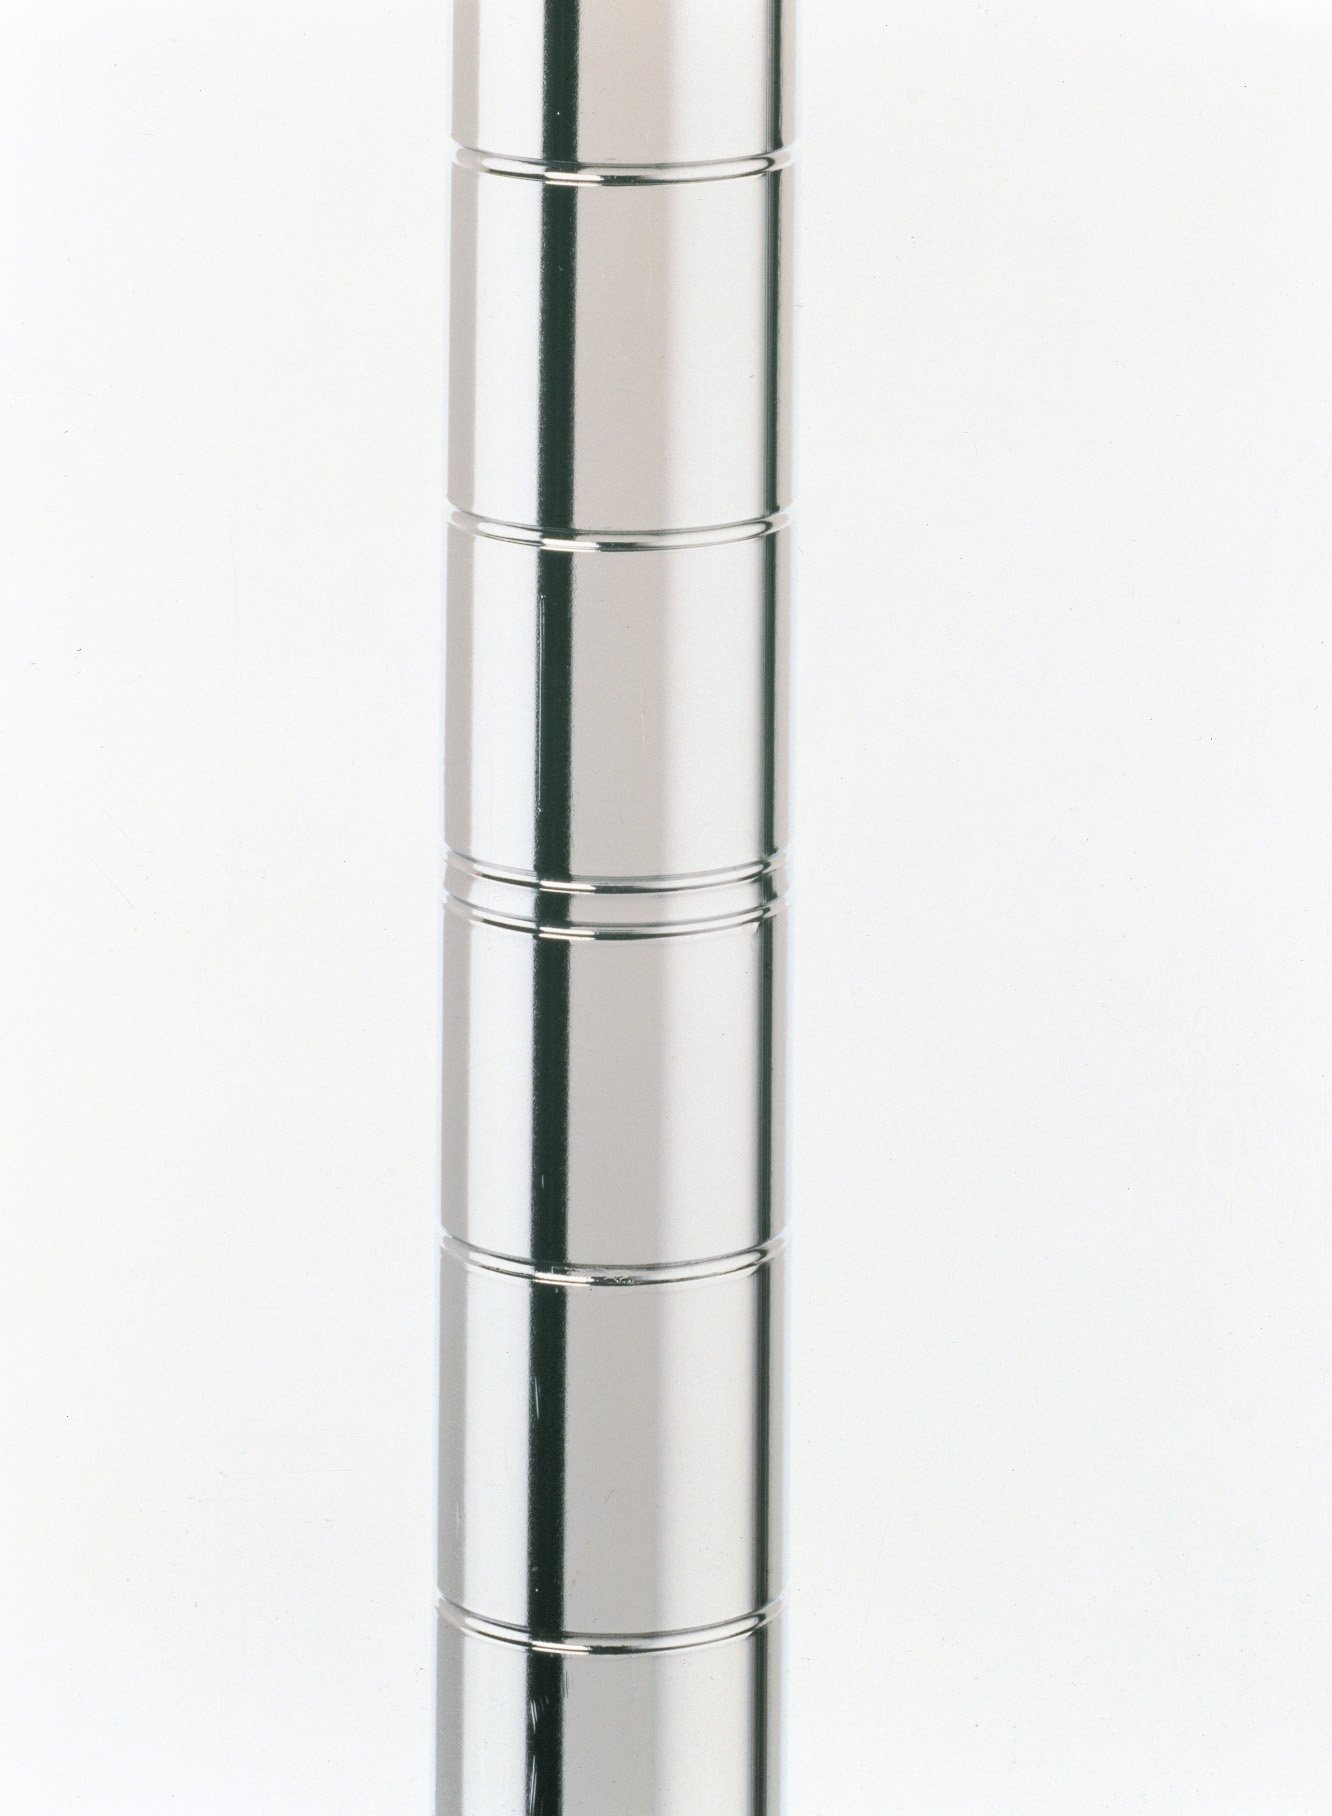 """8 ea Metro Stainless Steel post 62-9/16"""" for use with casters (not included)."""